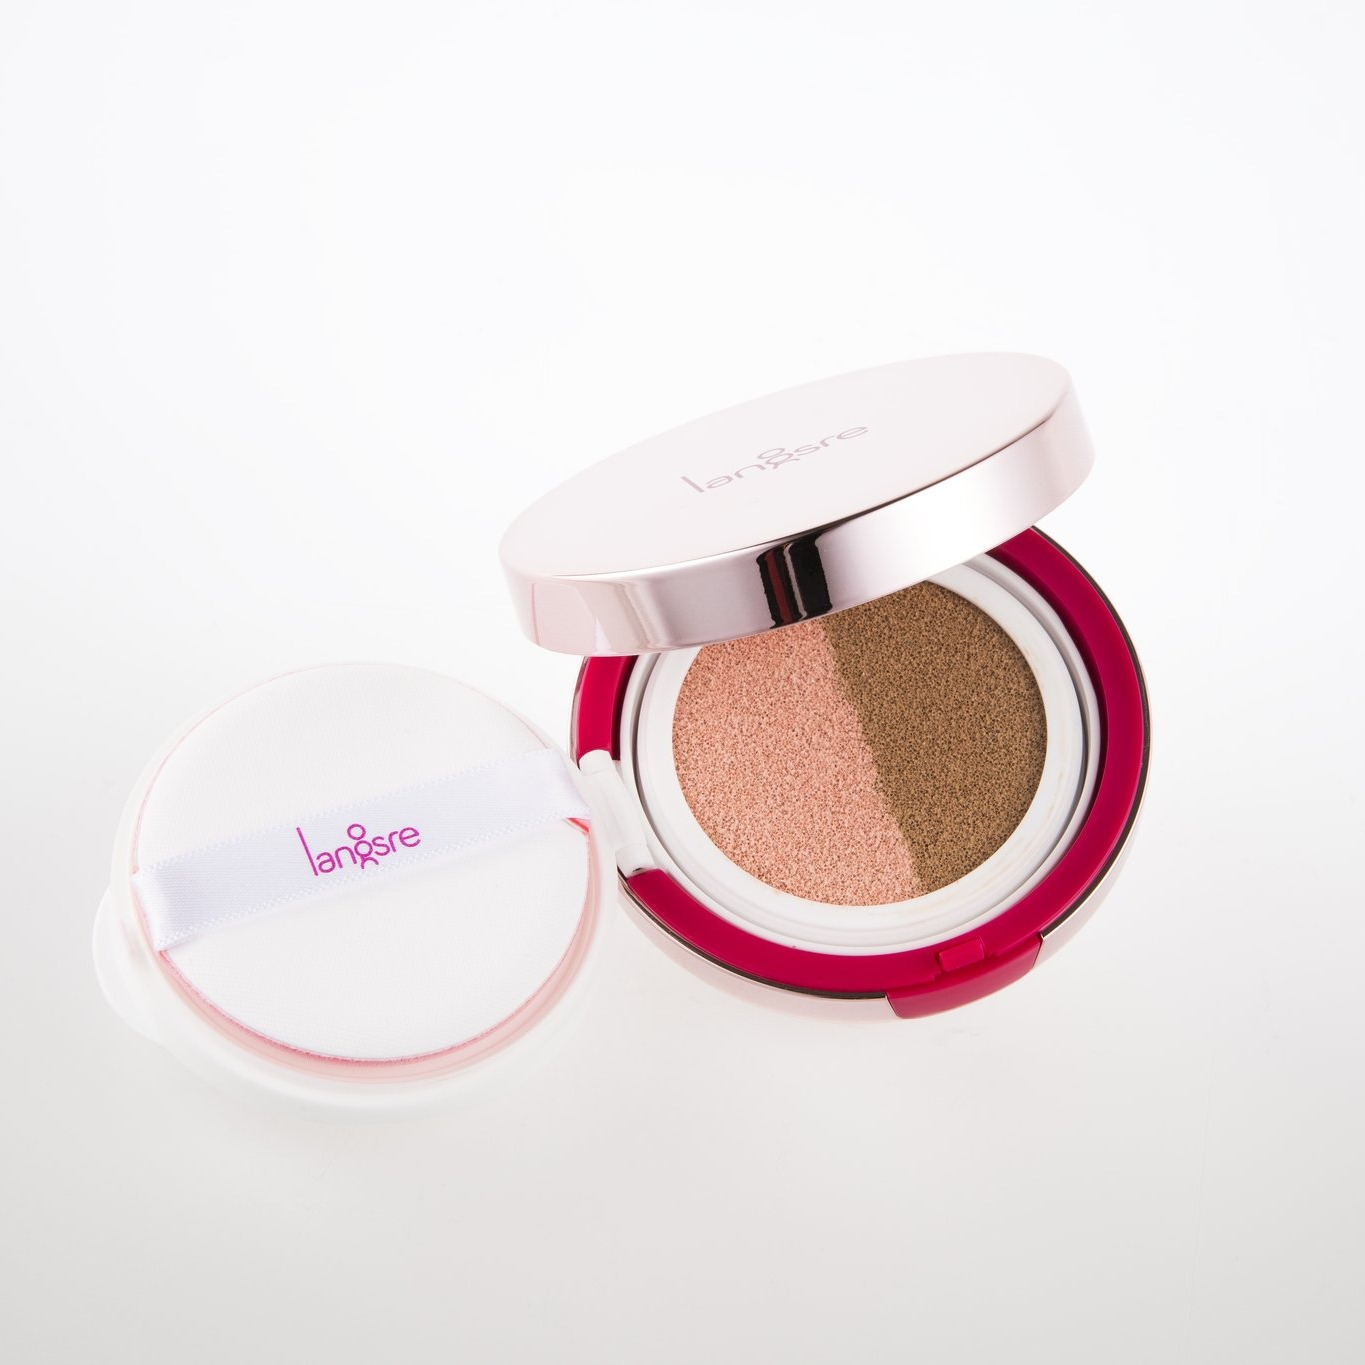 Langsre Very Berry Dual BB Cushion